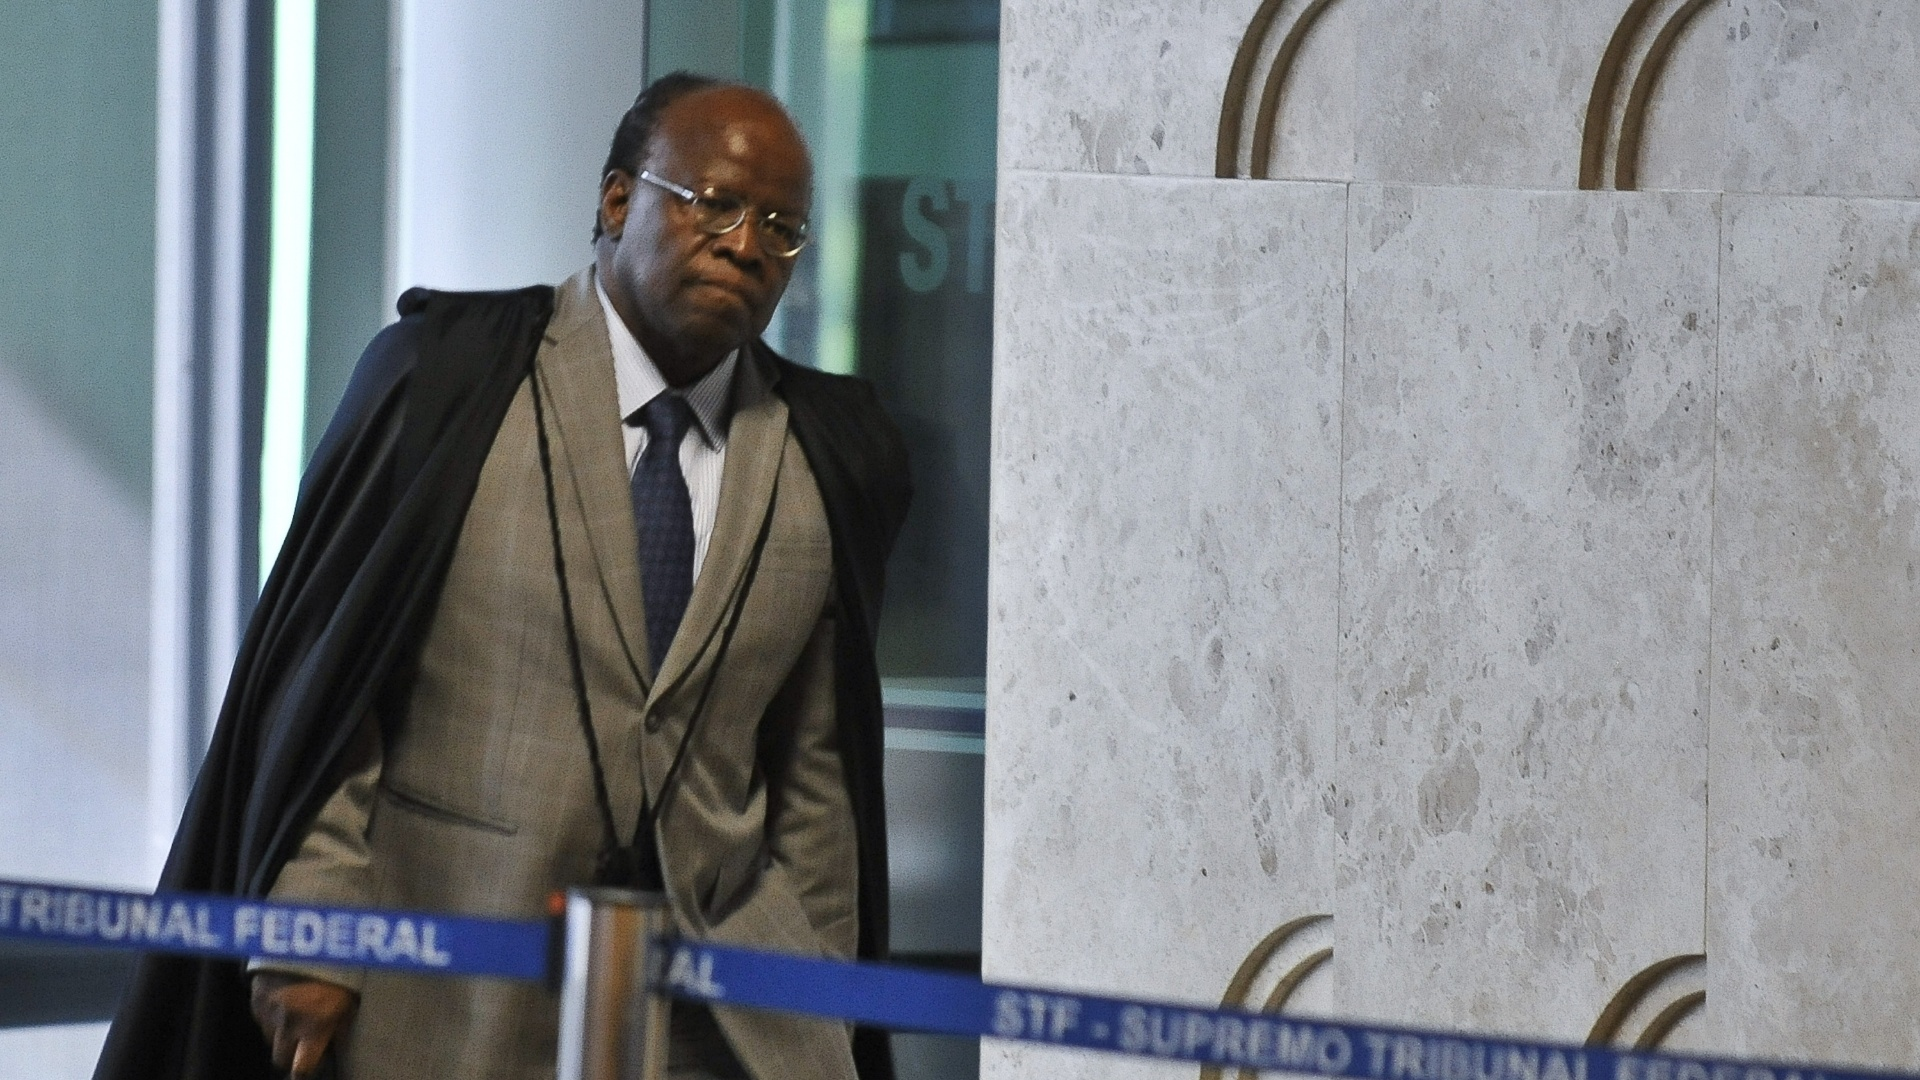 17.out.2012 - Ministro Joaquim Barbosa chega ao plenrio para julgamento do mensalo. O  STF (Supremo Tribunal Federal) conclui hoje item sobre lavagem de dinheiro por ex-parlamentares do PT